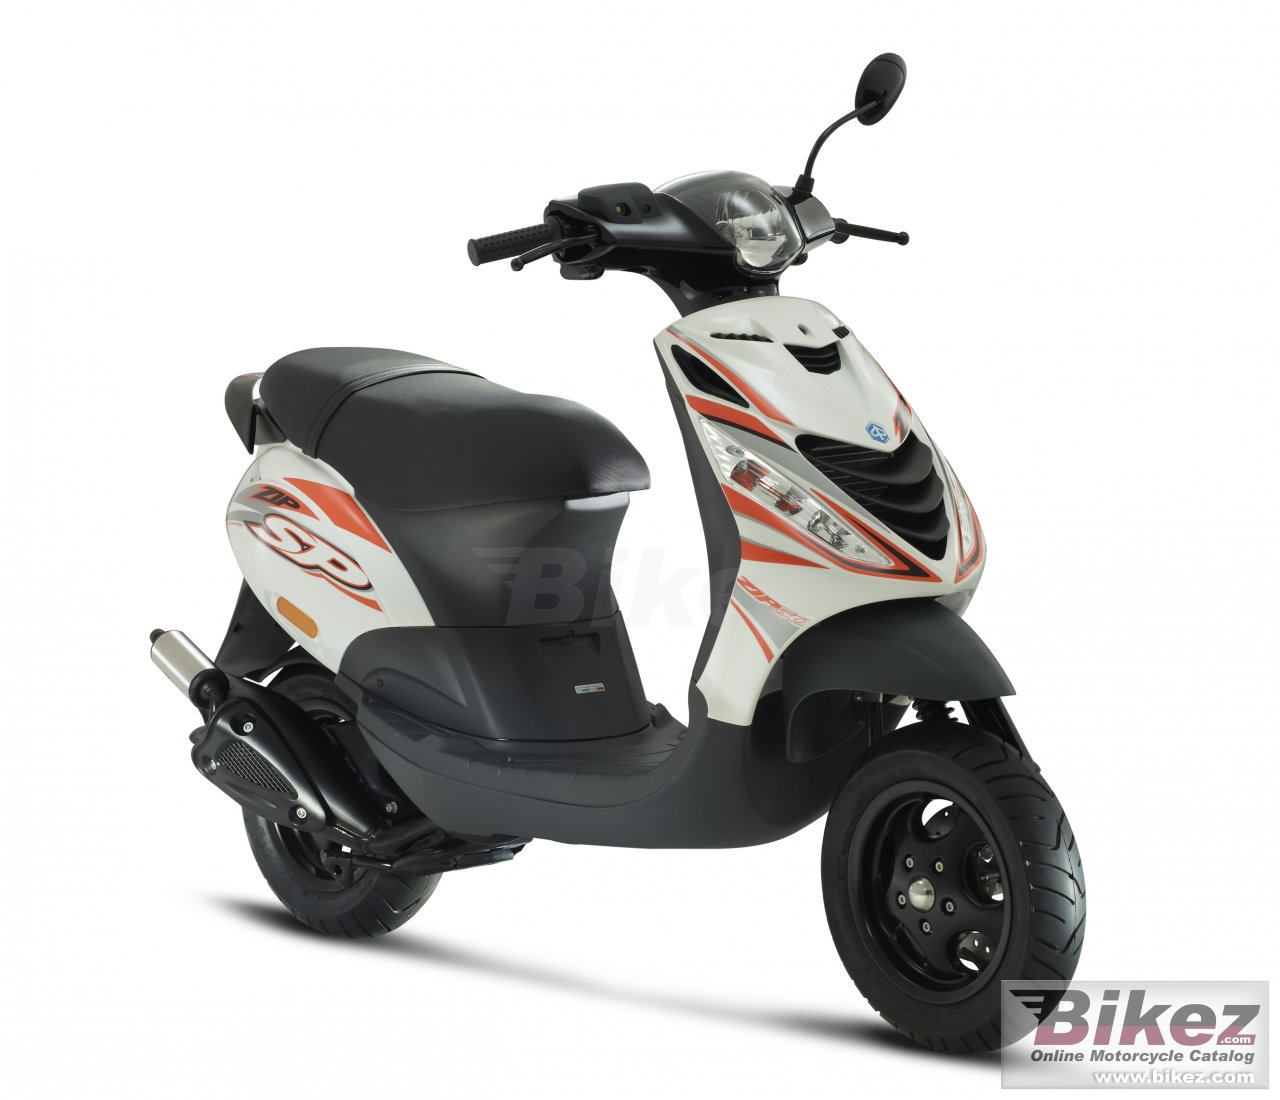 Big Piaggio zip 50 picture and wallpaper from Bikez.com